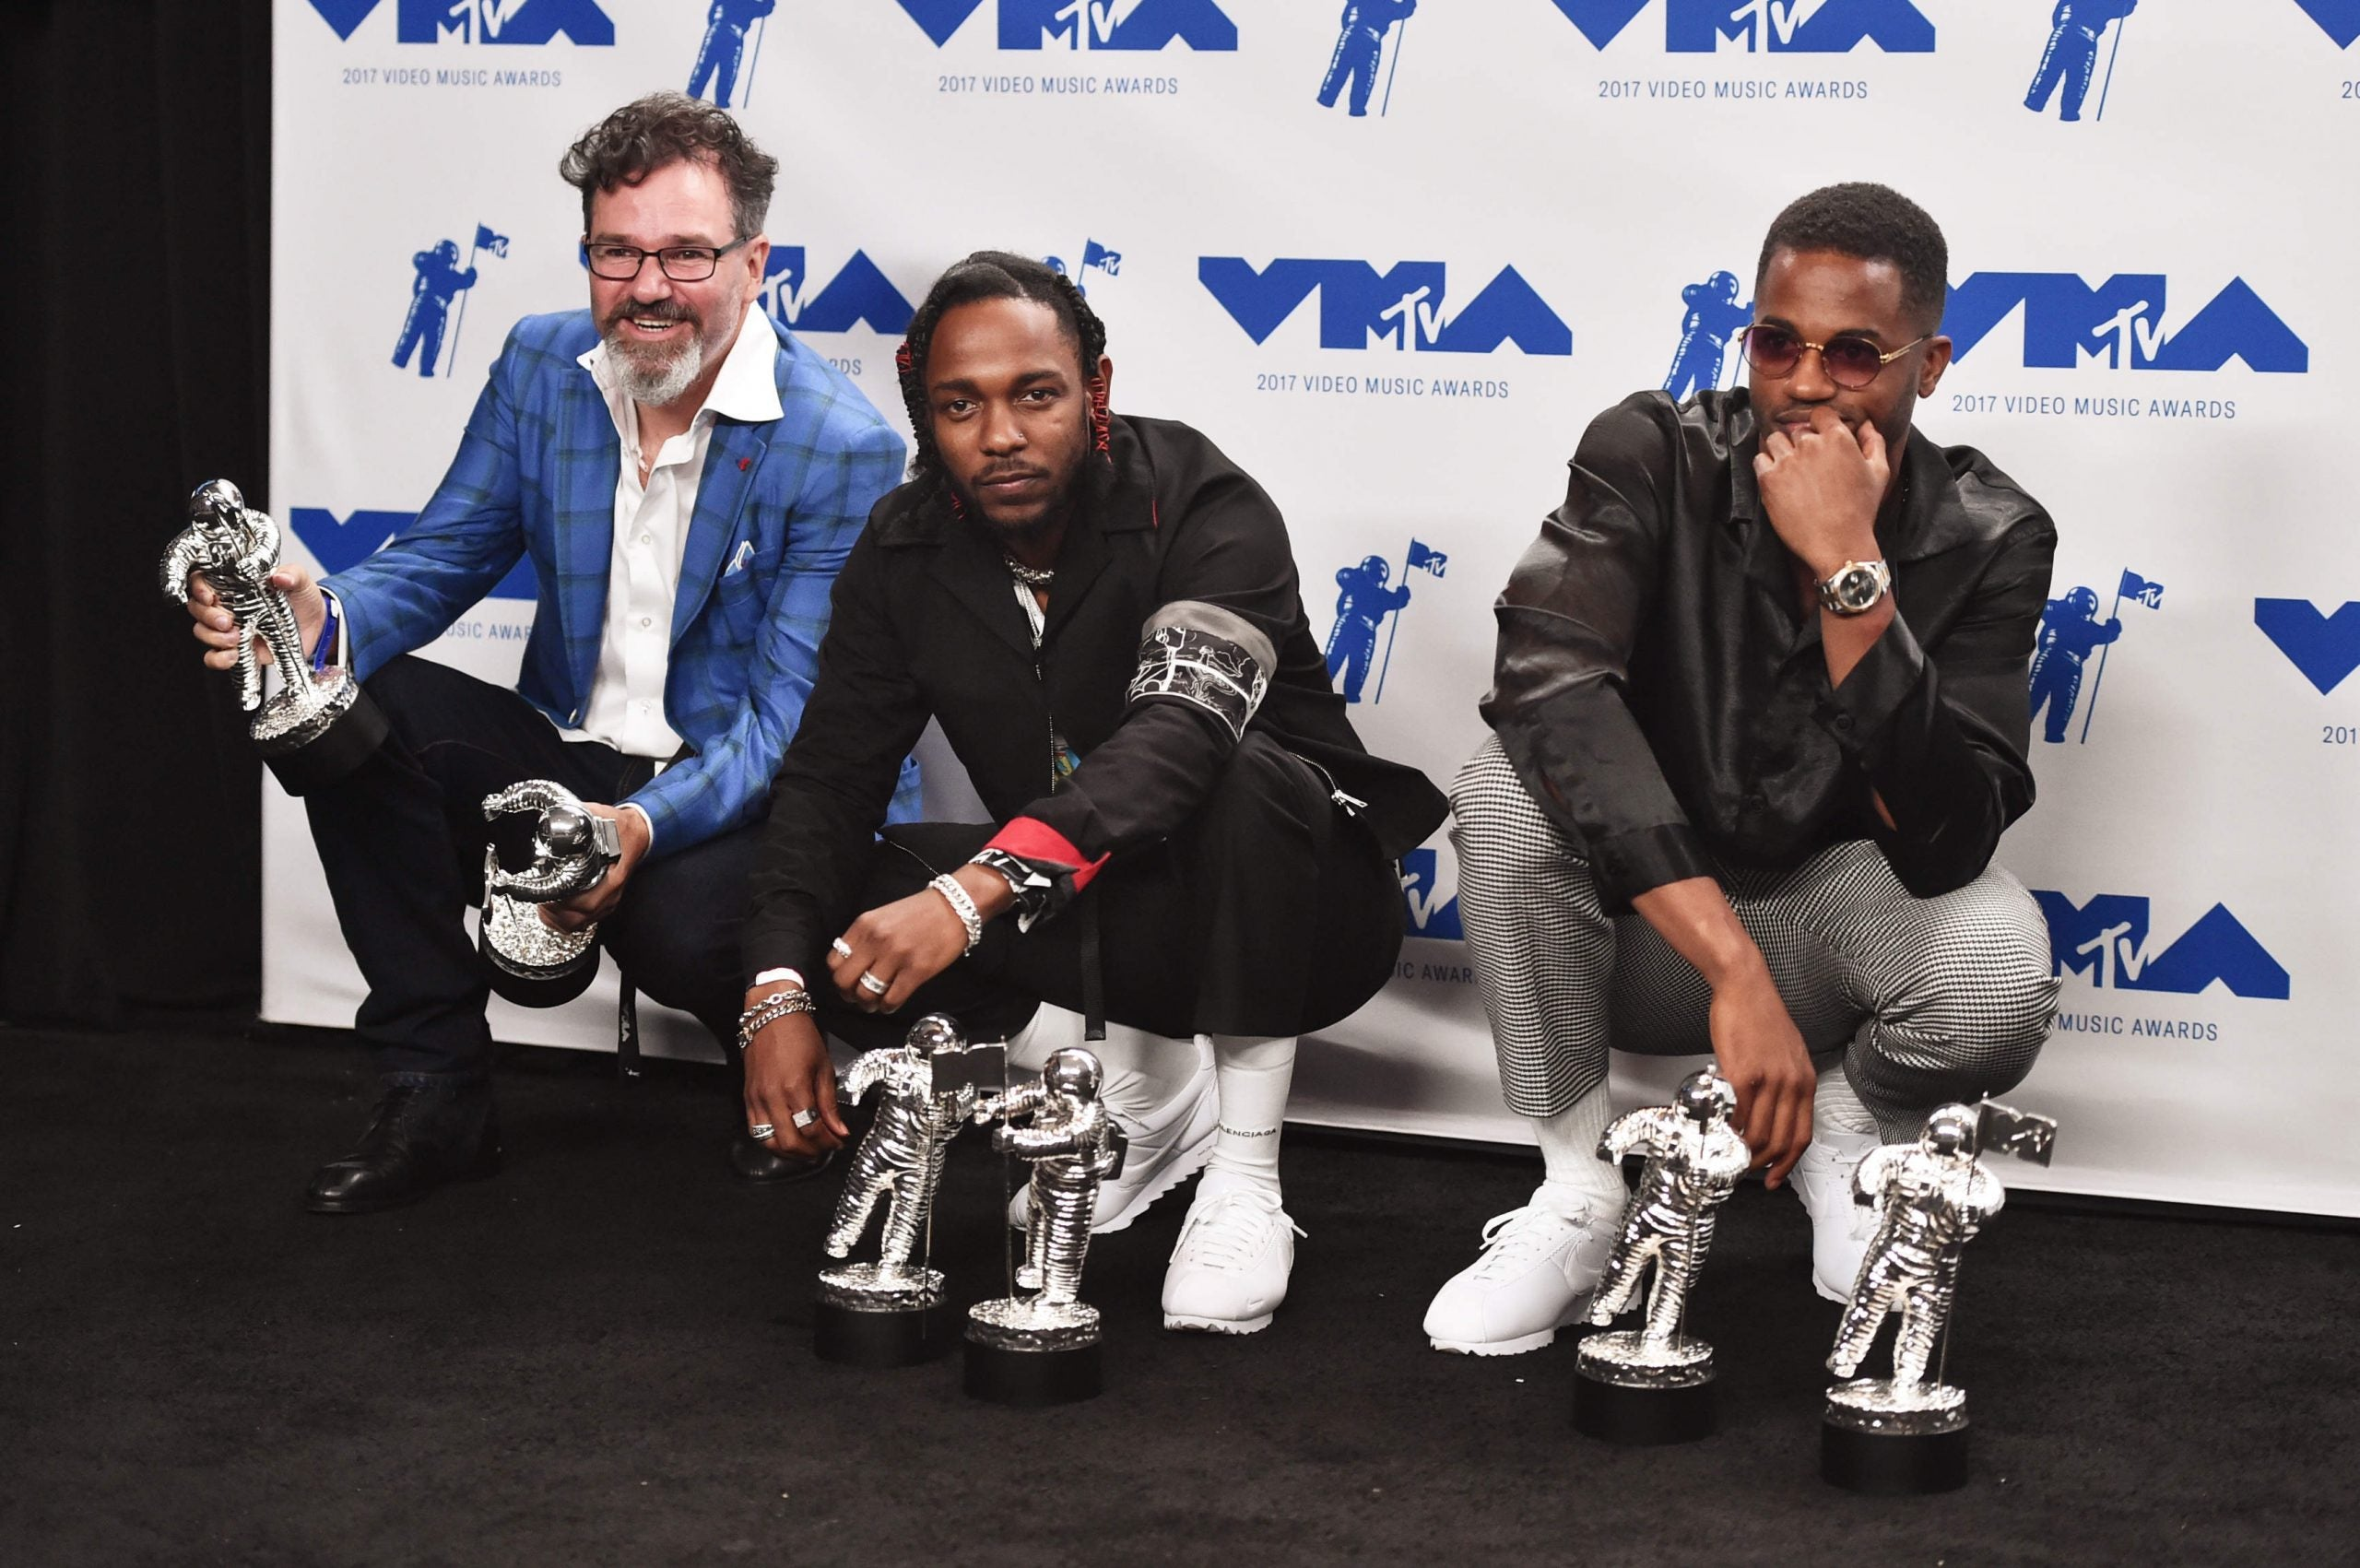 Being gender neutral doesn't help – just look at the MTV Video Music Awards